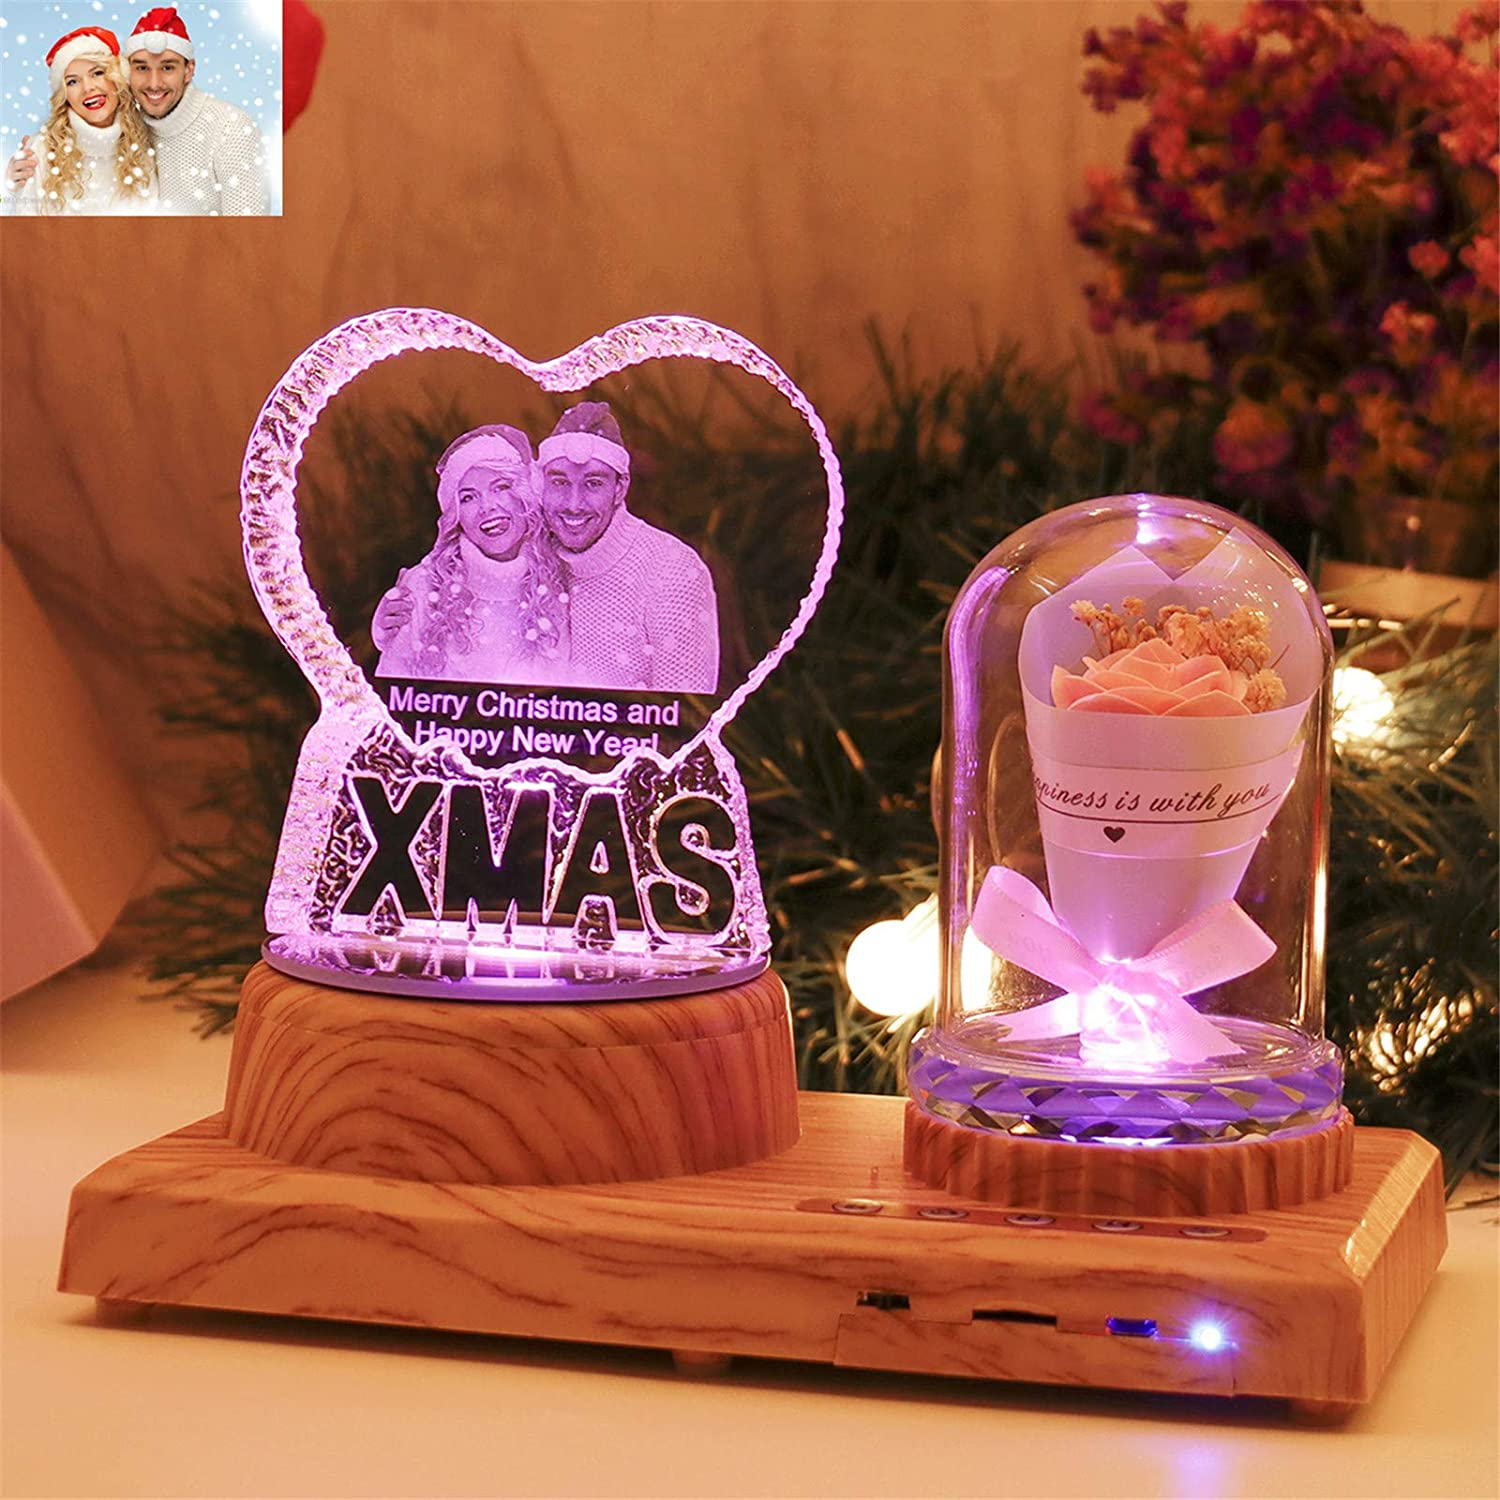 Personalized Xmas Night Light 3D Crystal Lamp Custom Photo Picture Engraved Led Light 7 Color with Bluetooth Rose Wood Base Personalized Gift for Women PAPA Christmas Decoration